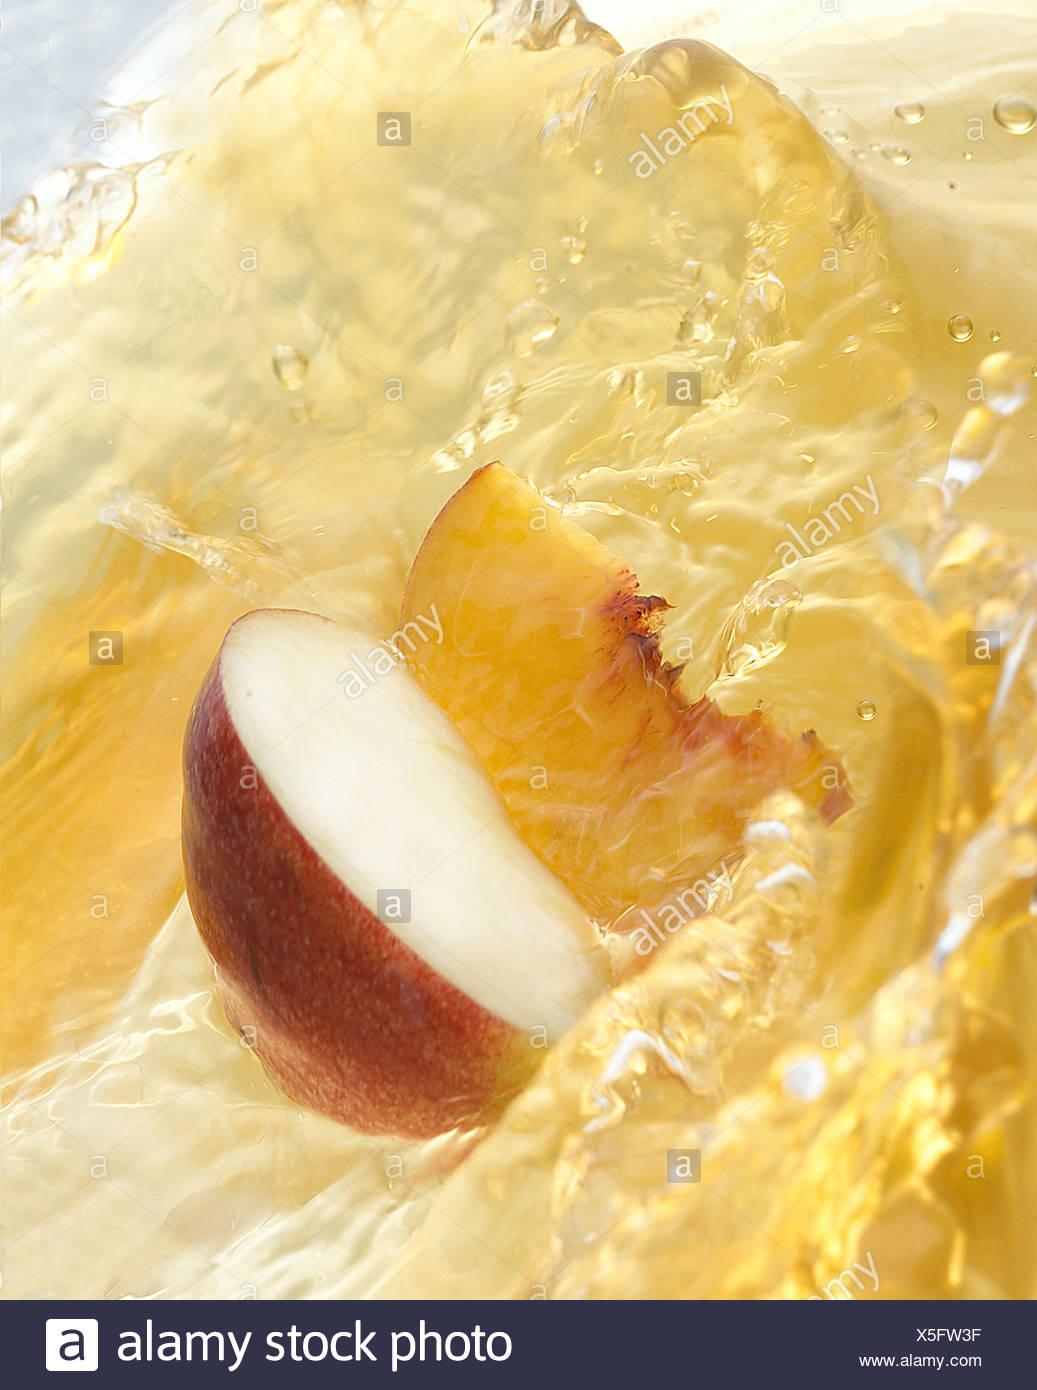 A slice of apple and a slice of peach in juice - Stock Image